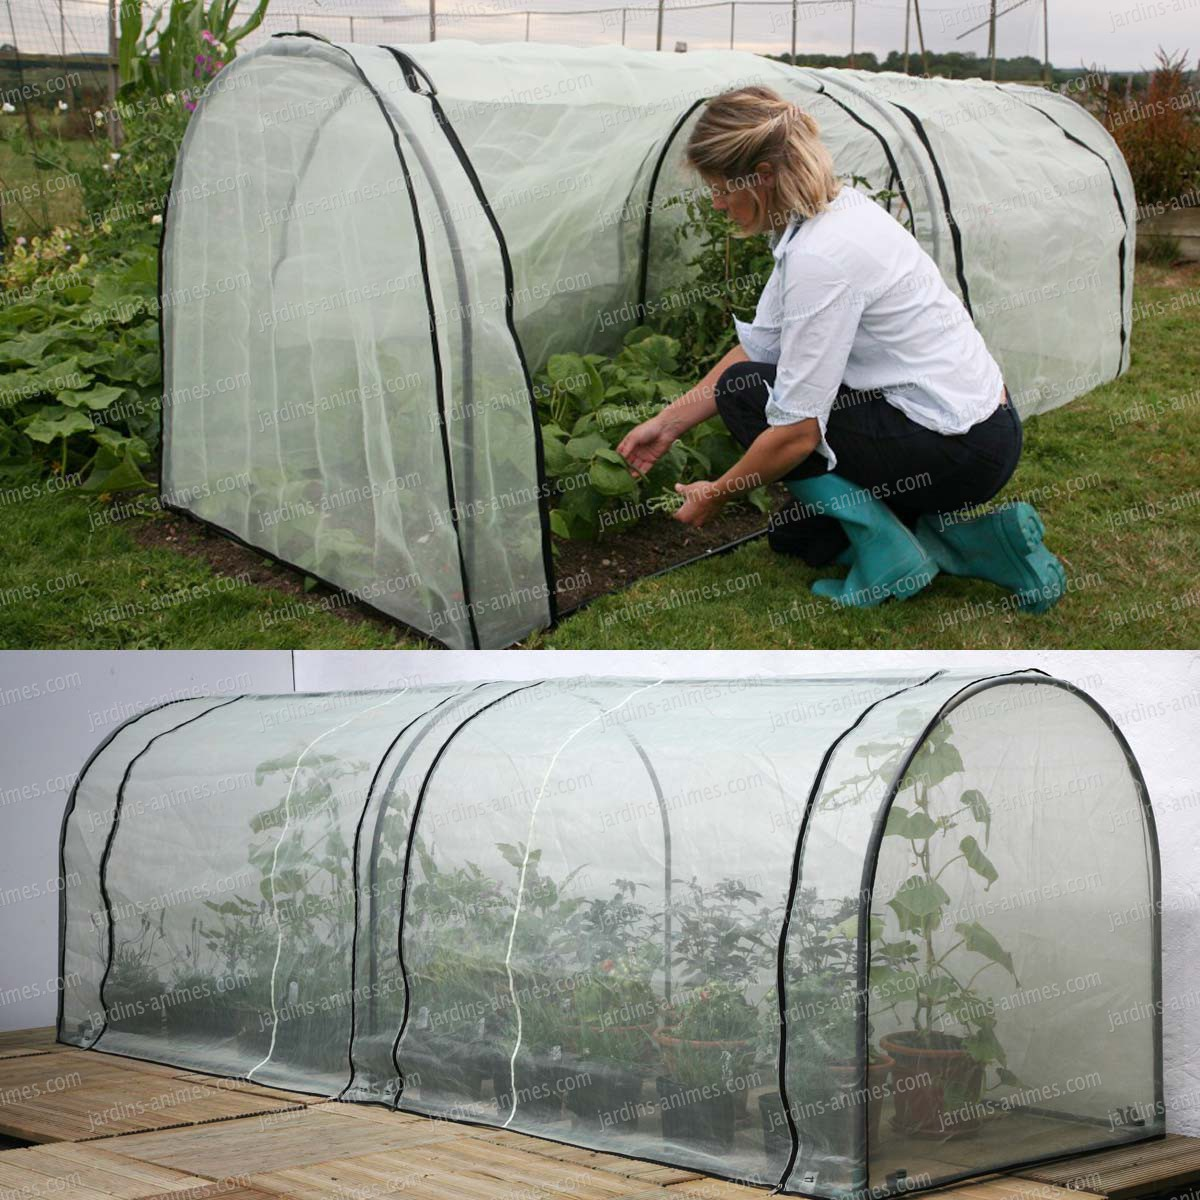 Mini serre tunnel portable et bache micro a r e anti insecte tunnel chassis cloche for Faire une mini serre de jardin